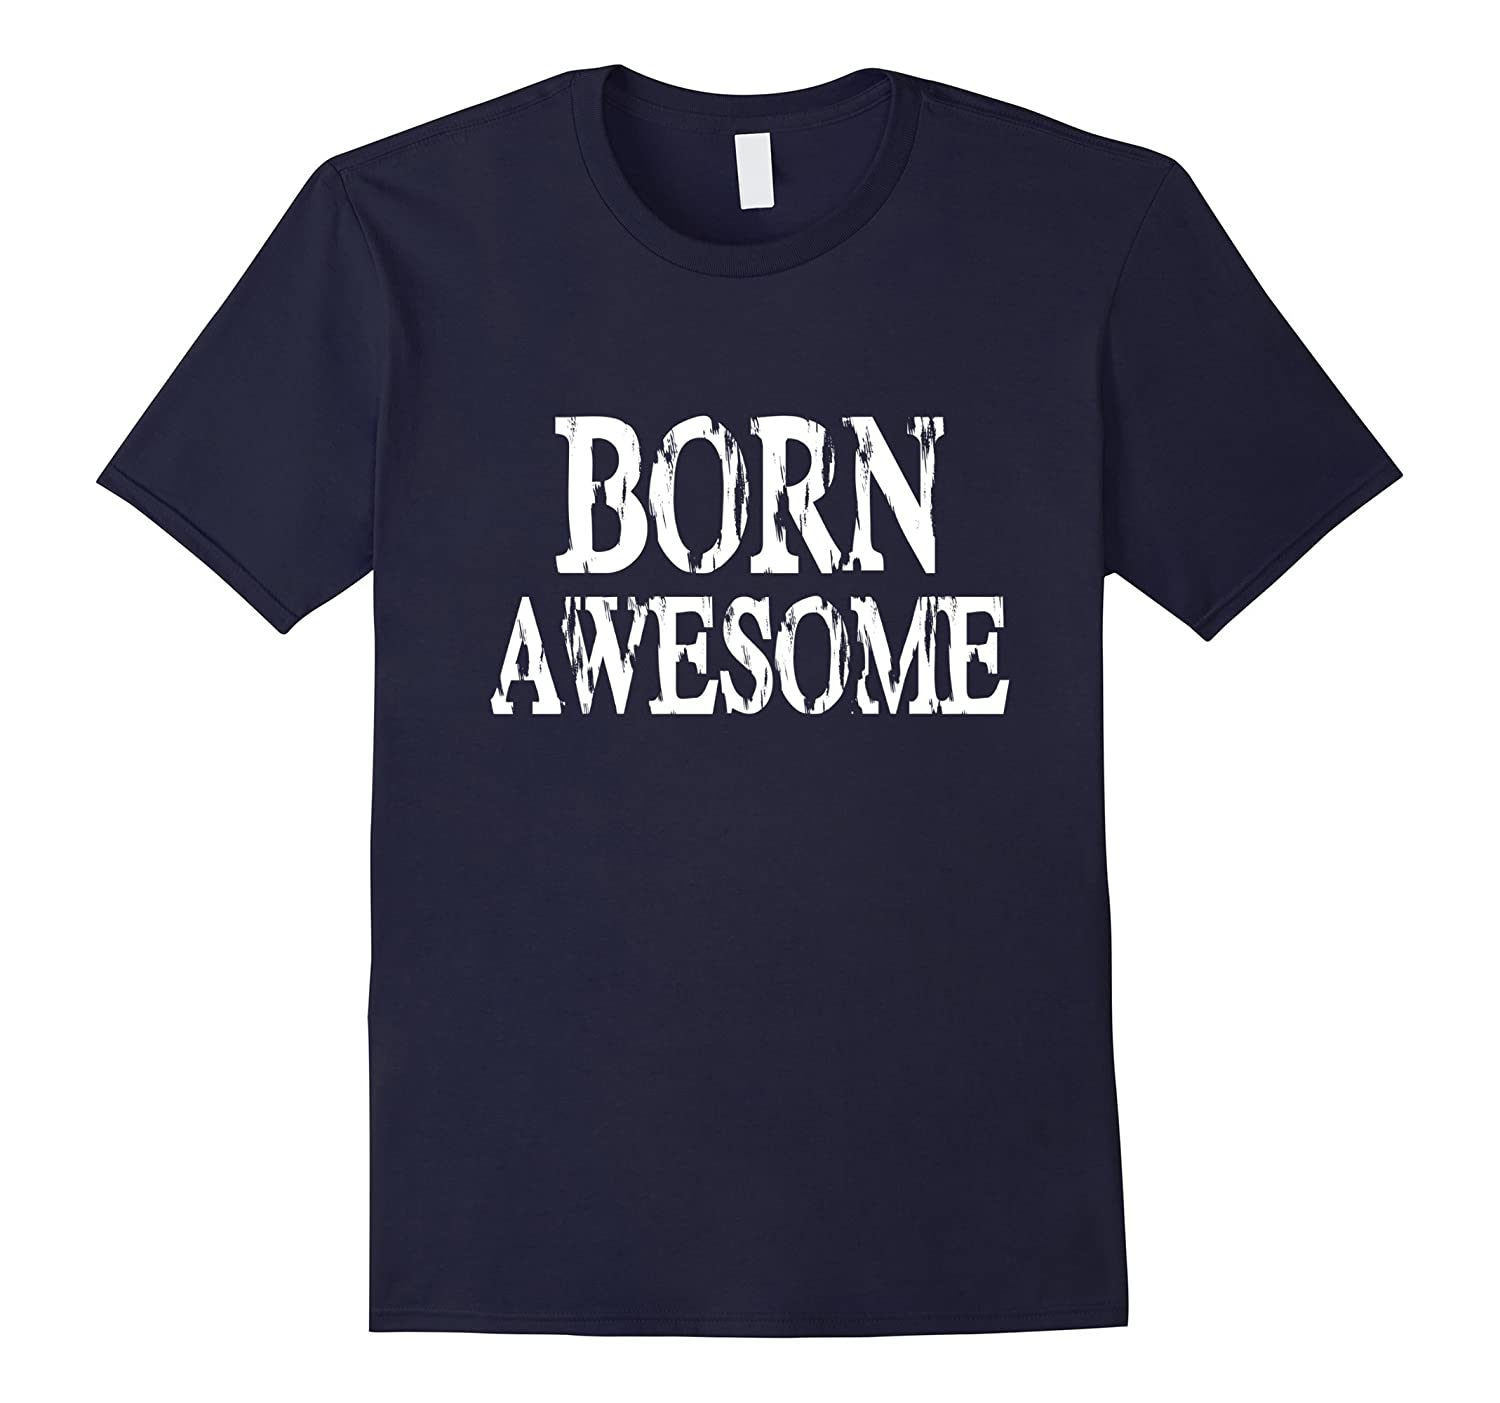 Born Awesome T-Shirt Birthday, Teens Kids Men's Women's Tee-Art